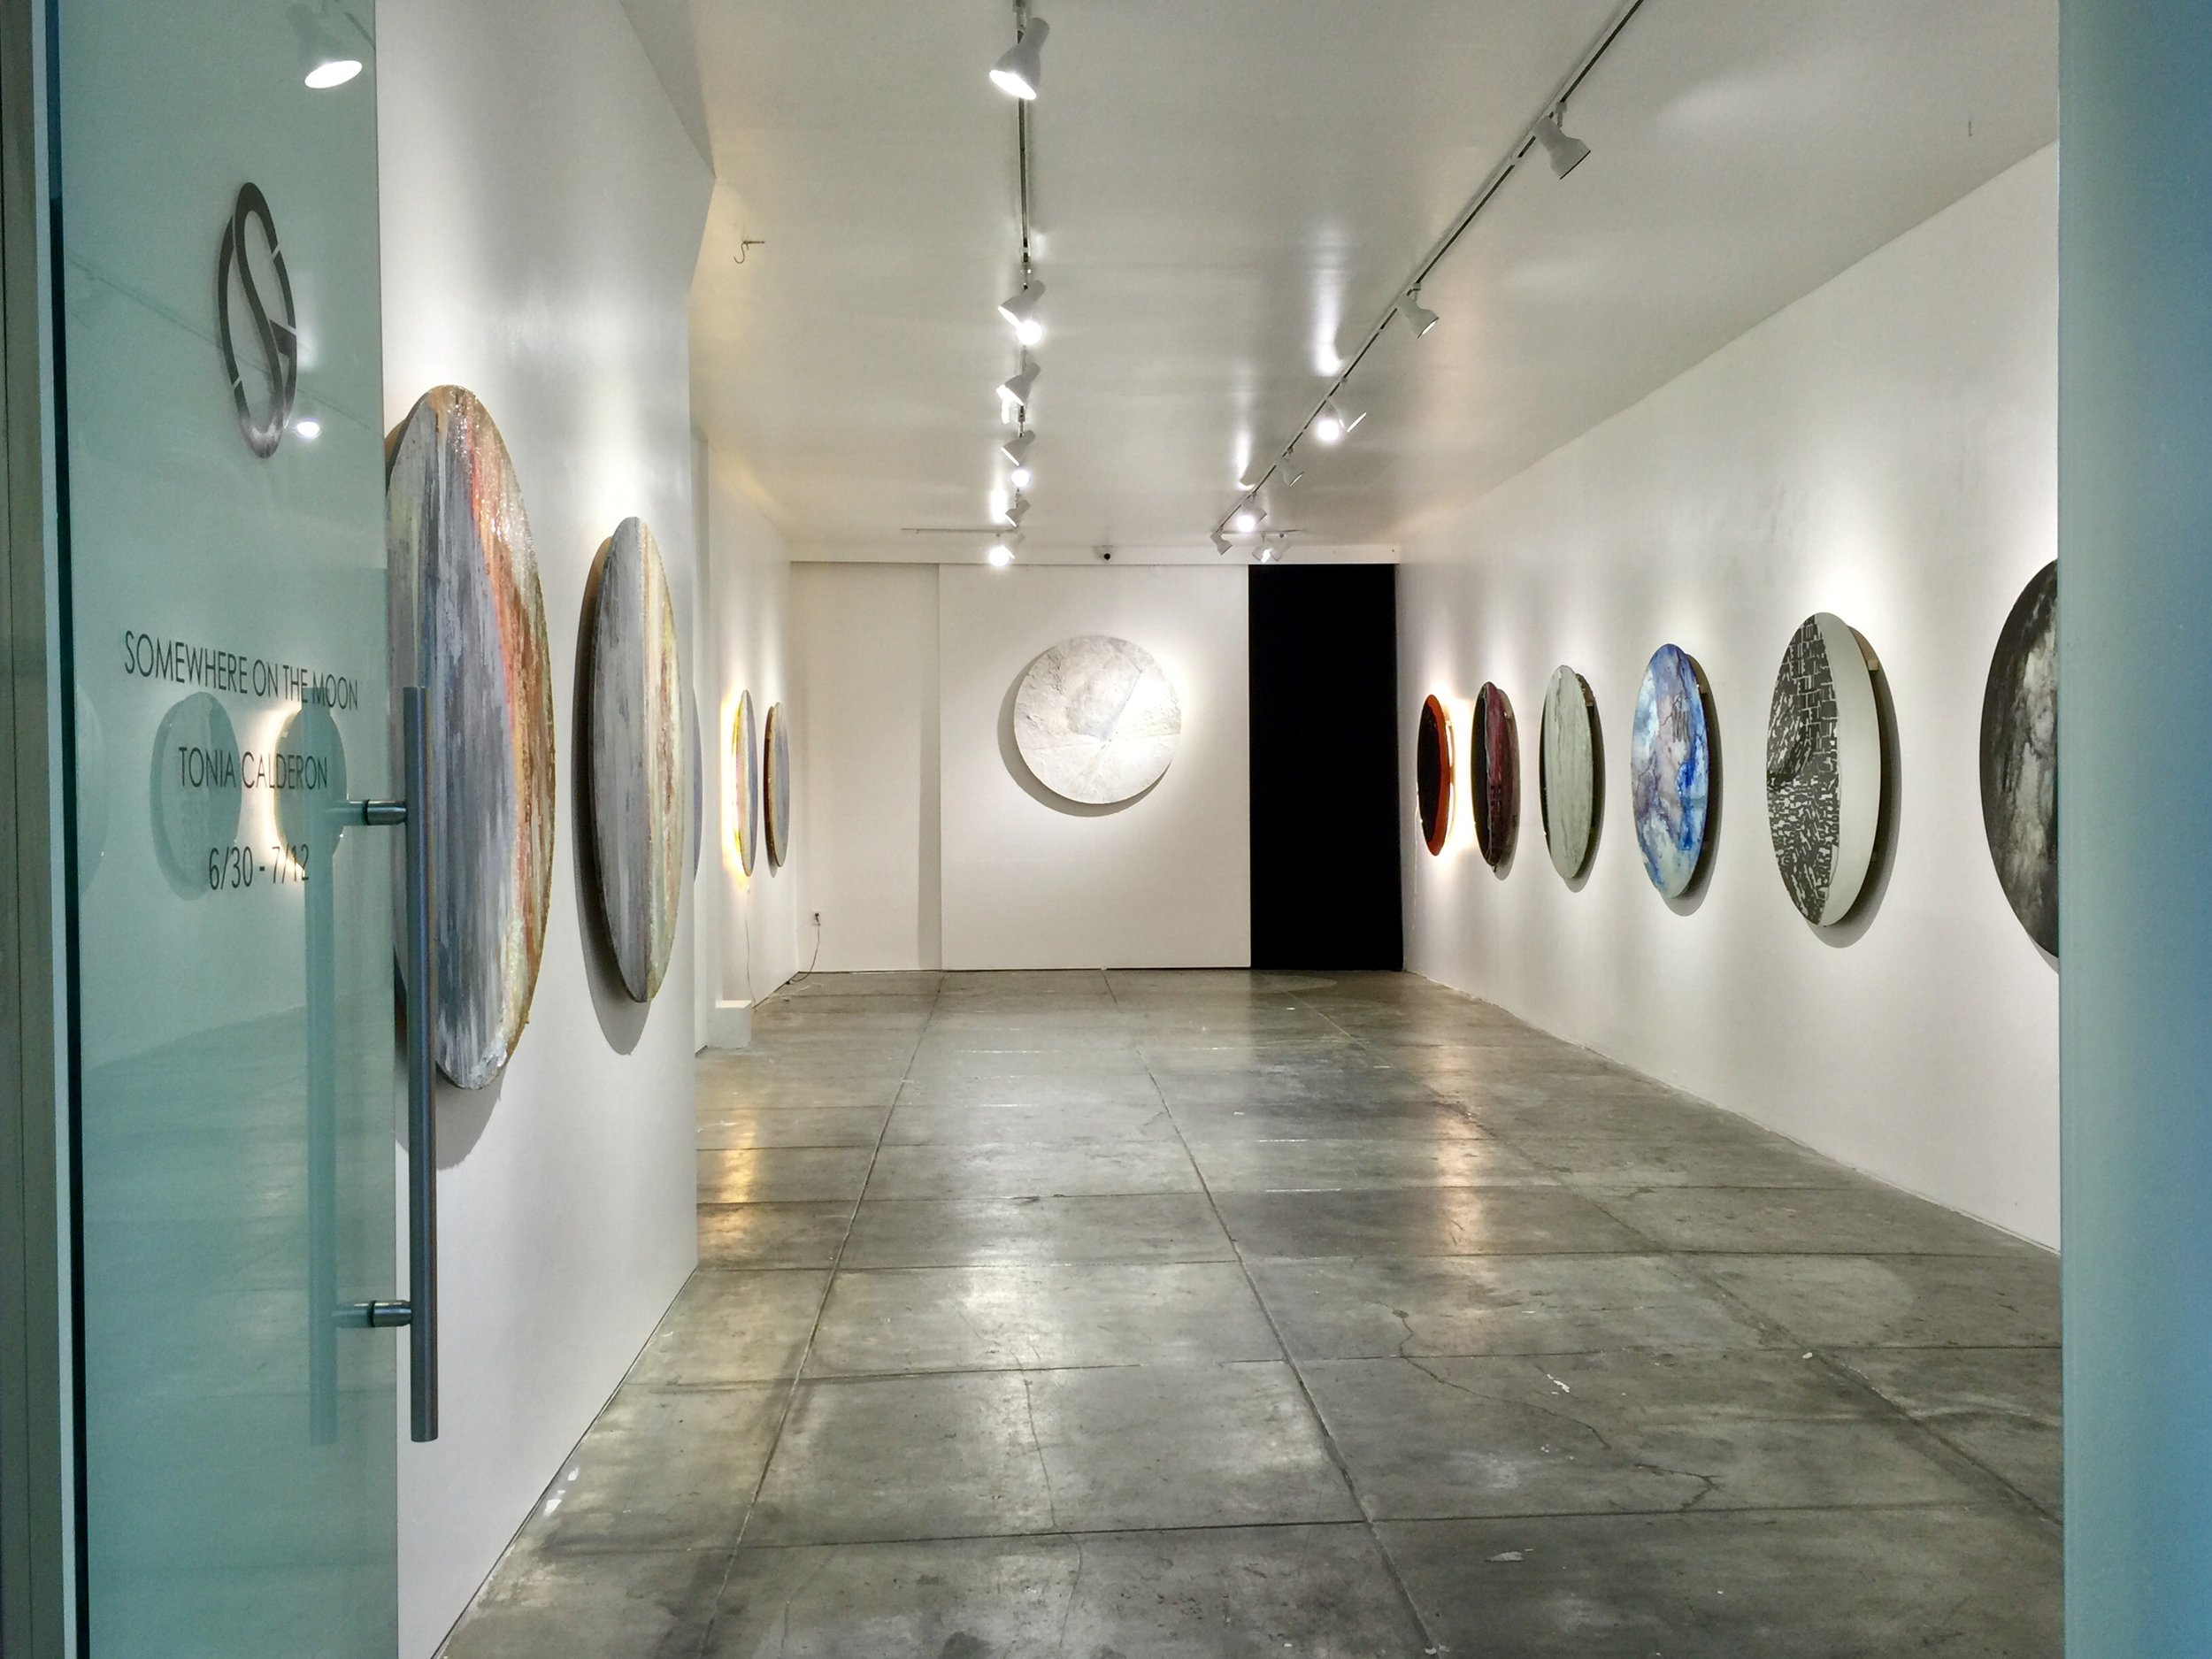 CALDERON SOLO EXHIBITION AT SOZE GALLERY, LOS ANGELES